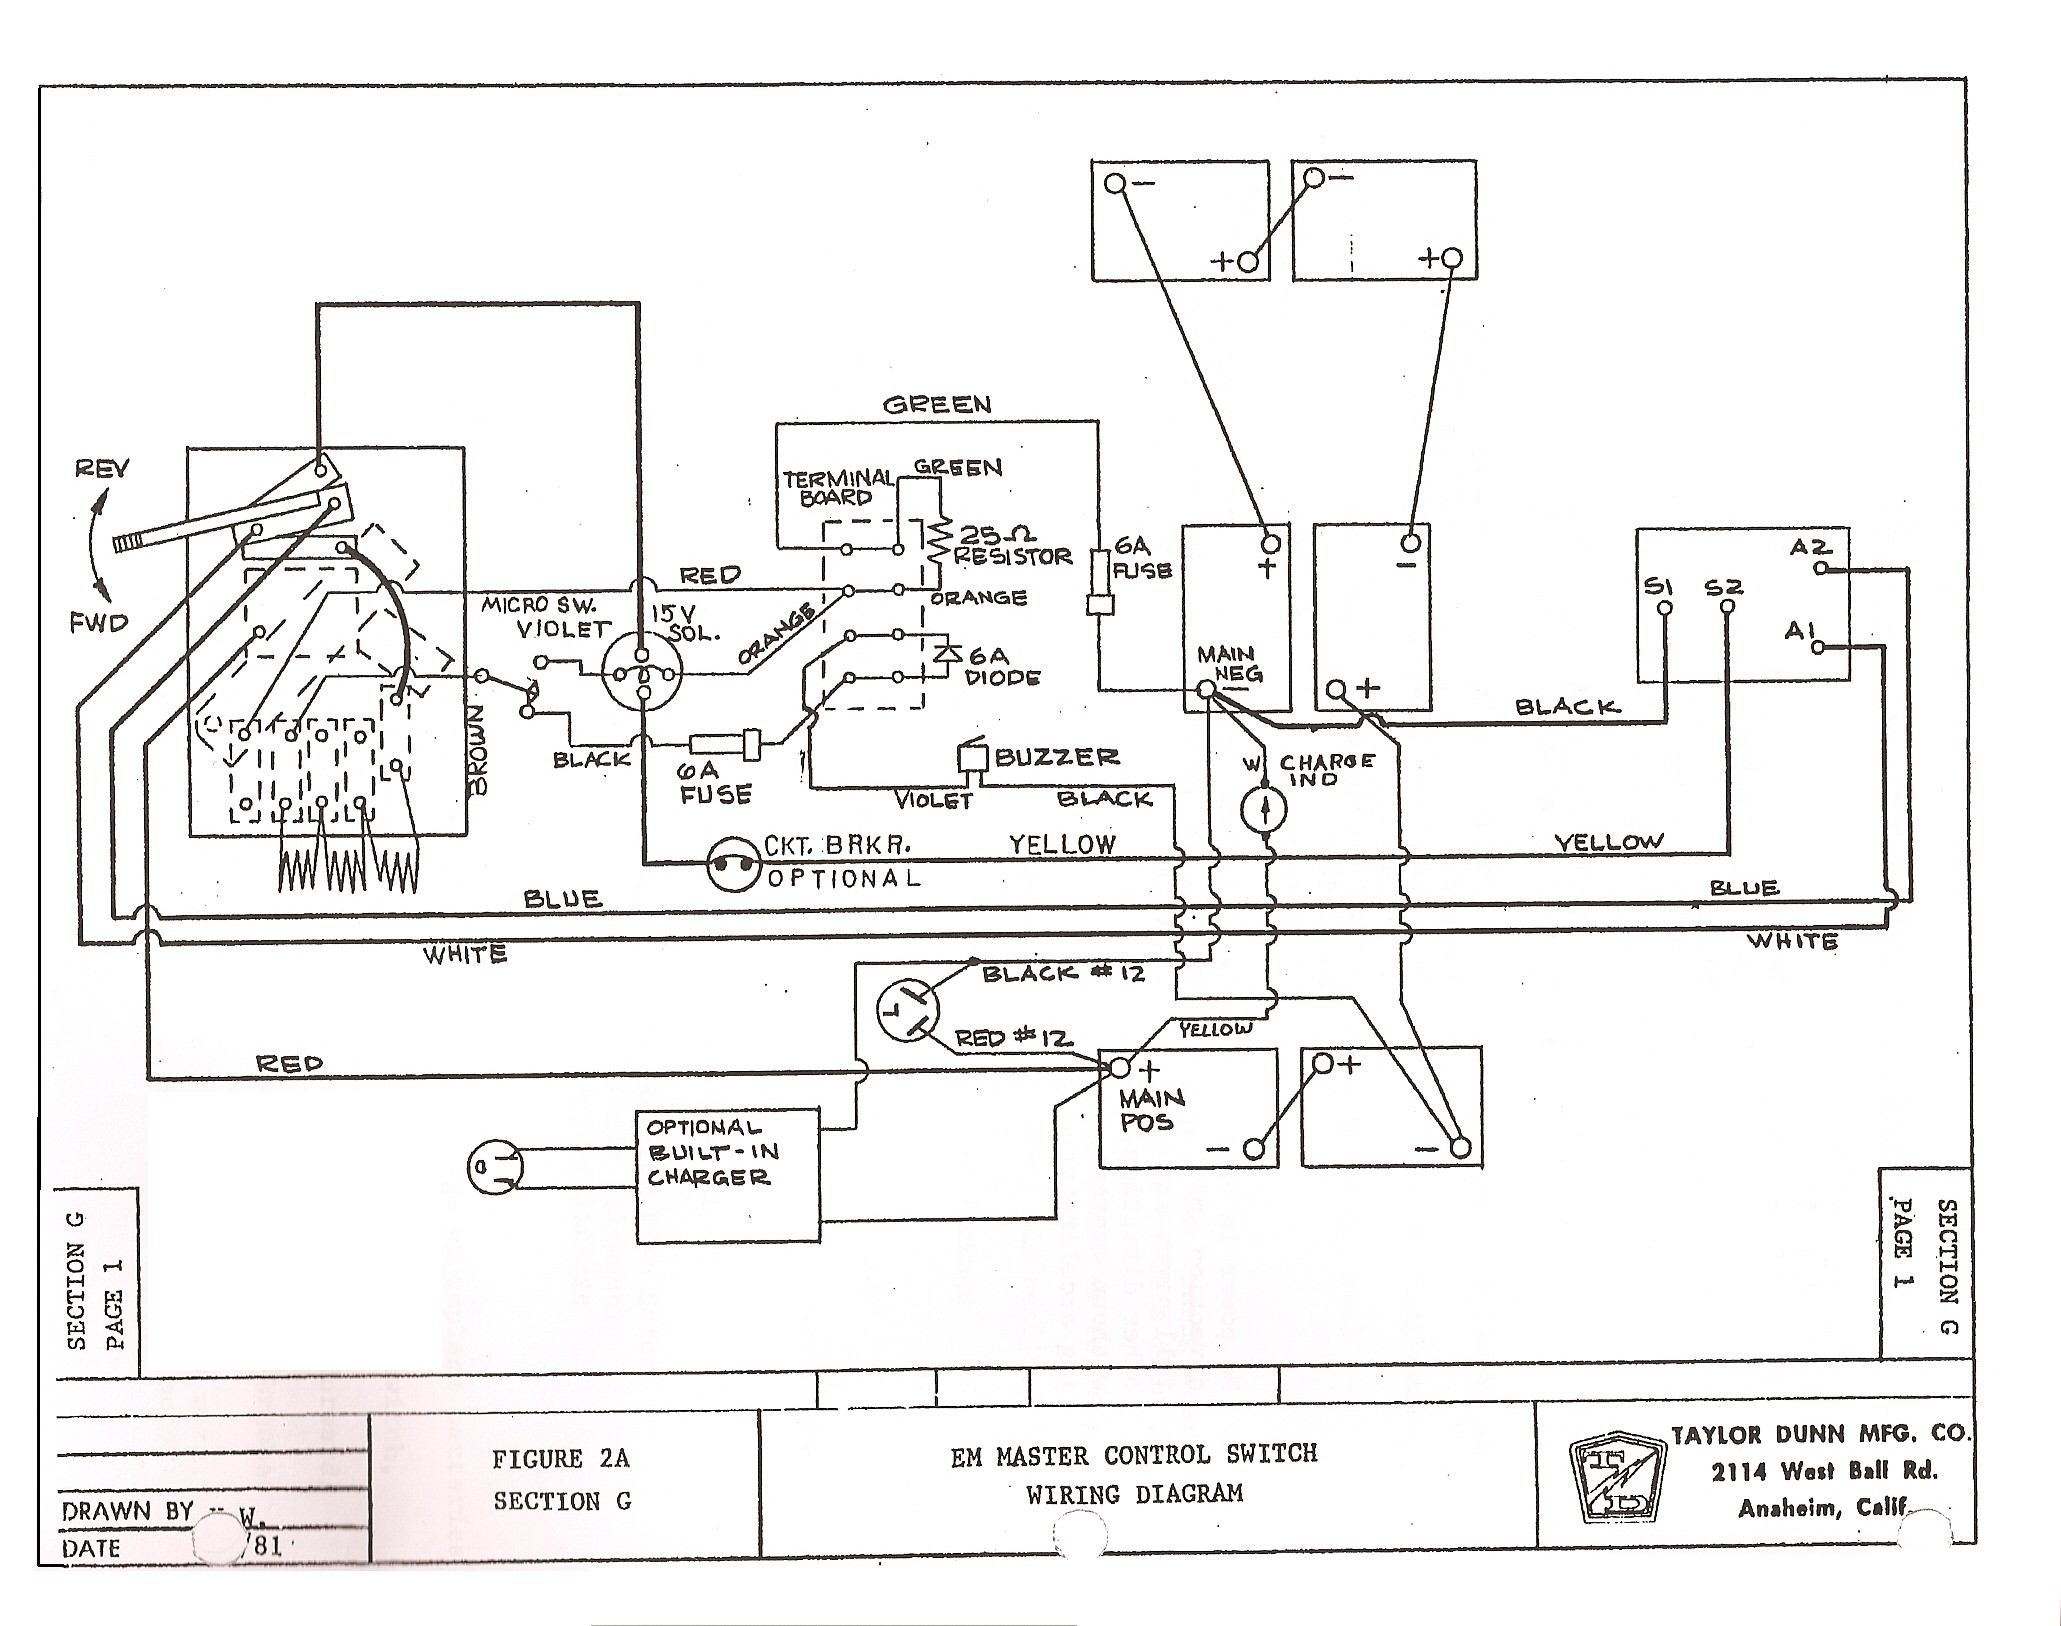 1990 yamaha g2 golf cart wiring diagram